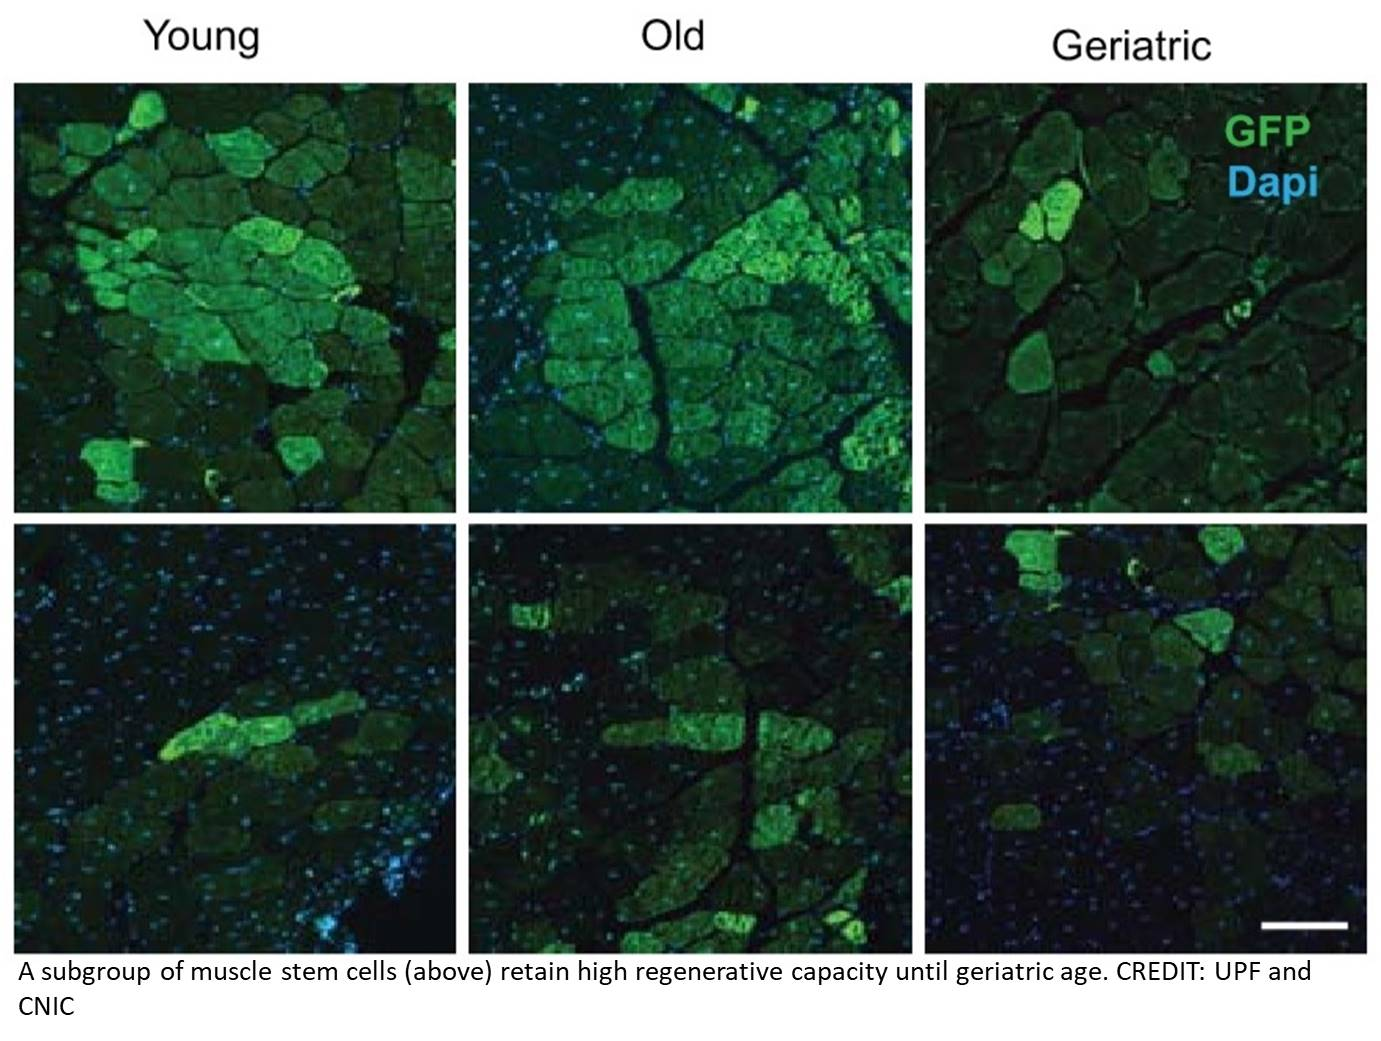 Stem cells that resists ageing and maintains muscle regeneration identified!